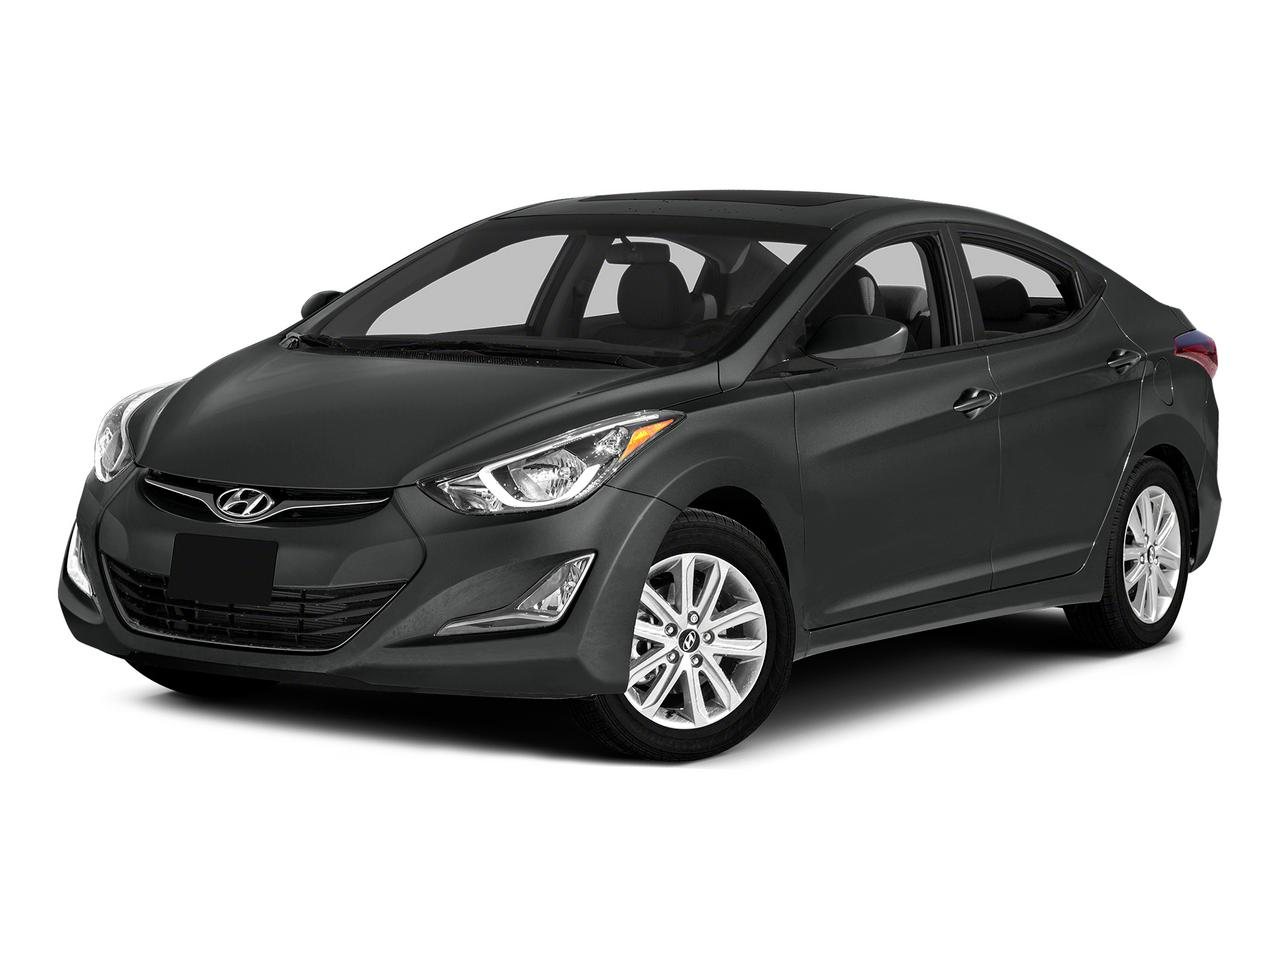 2015 Hyundai Elantra Vehicle Photo in Peoria, IL 61615